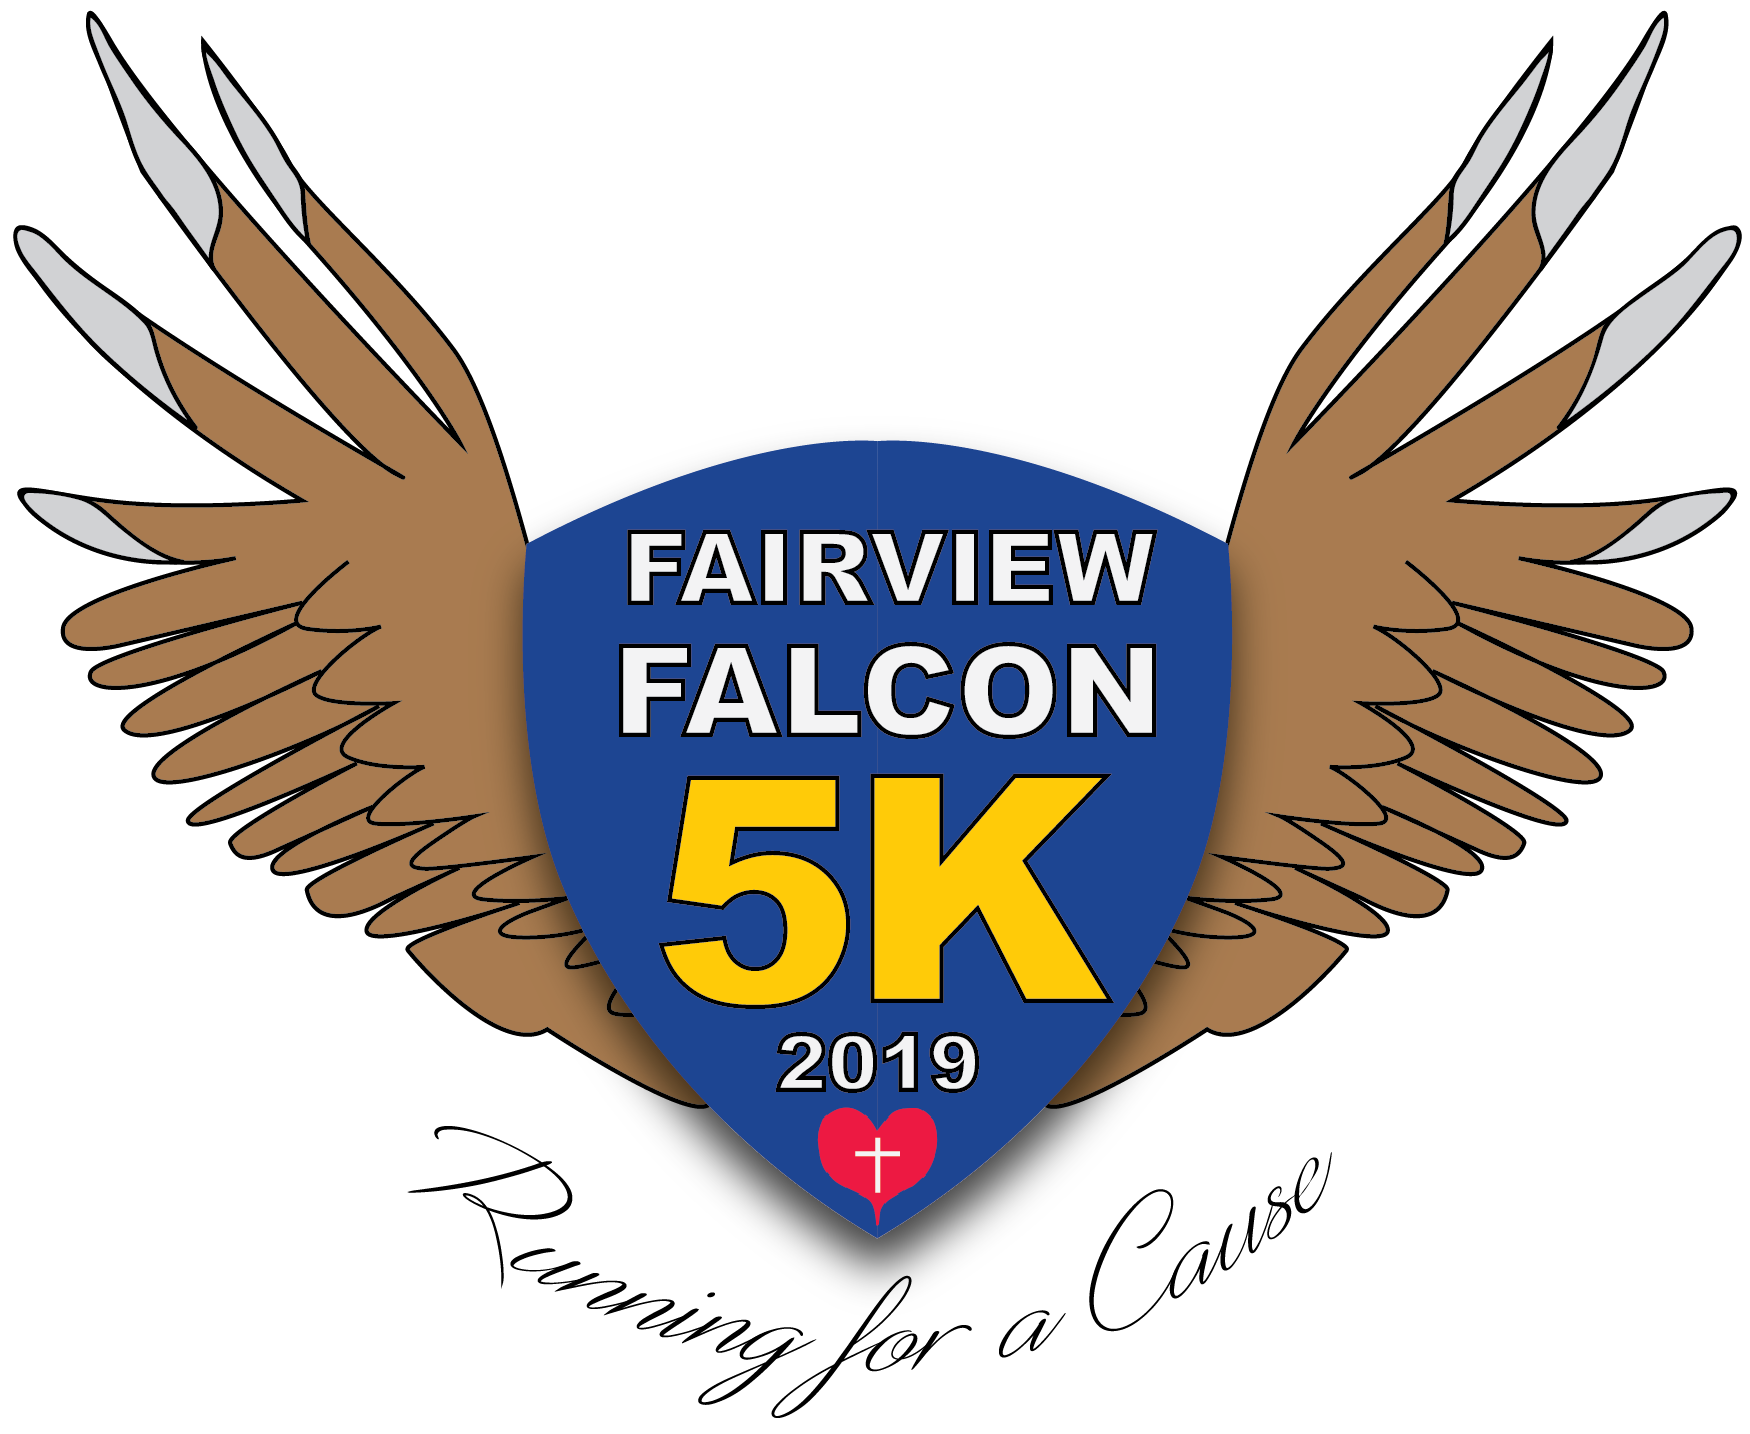 Fairview Falcon 5K